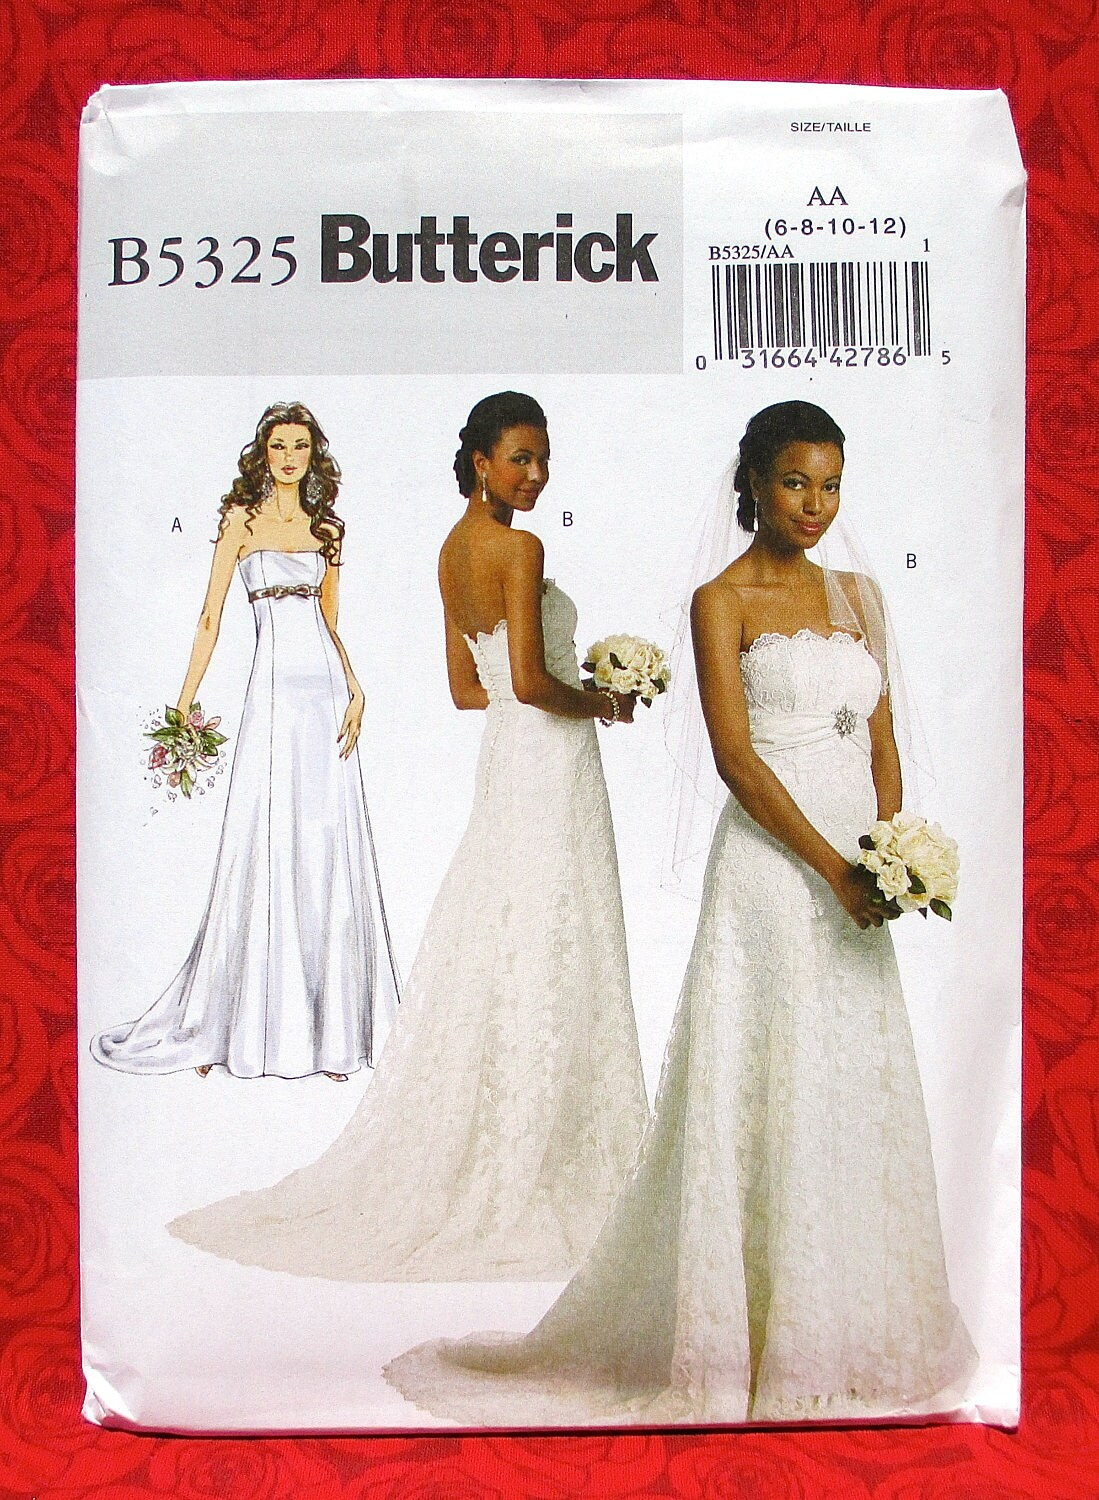 Butterick Sewing Pattern B5325 Bridal Gown Strapless Wedding | Etsy